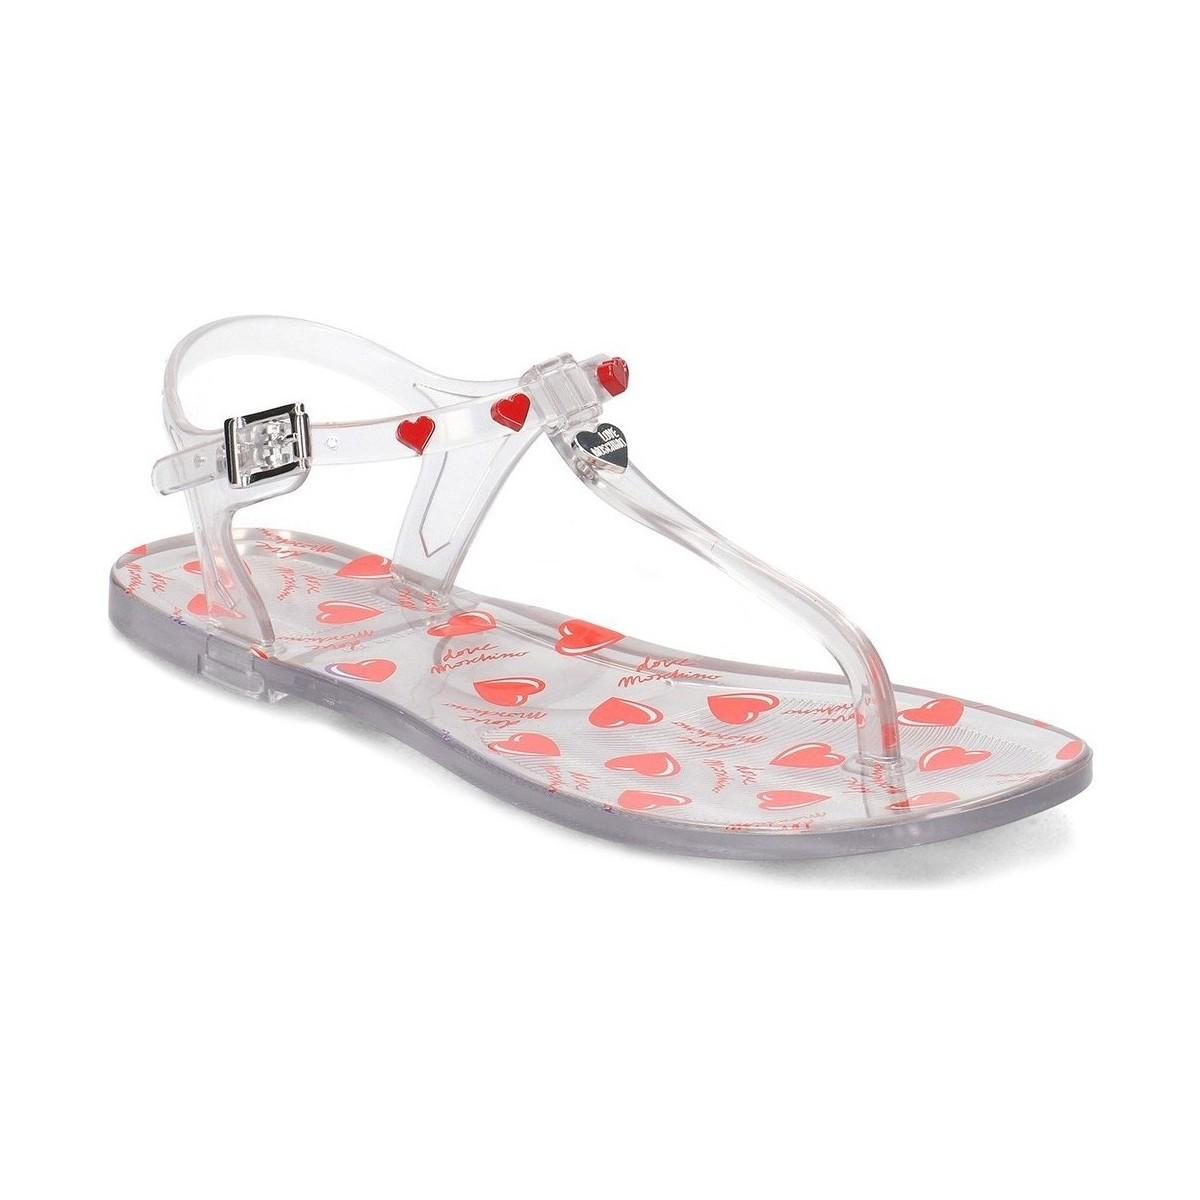 7698a2384dc1 Love Moschino Jelly Women s Sandals In White in White - Lyst